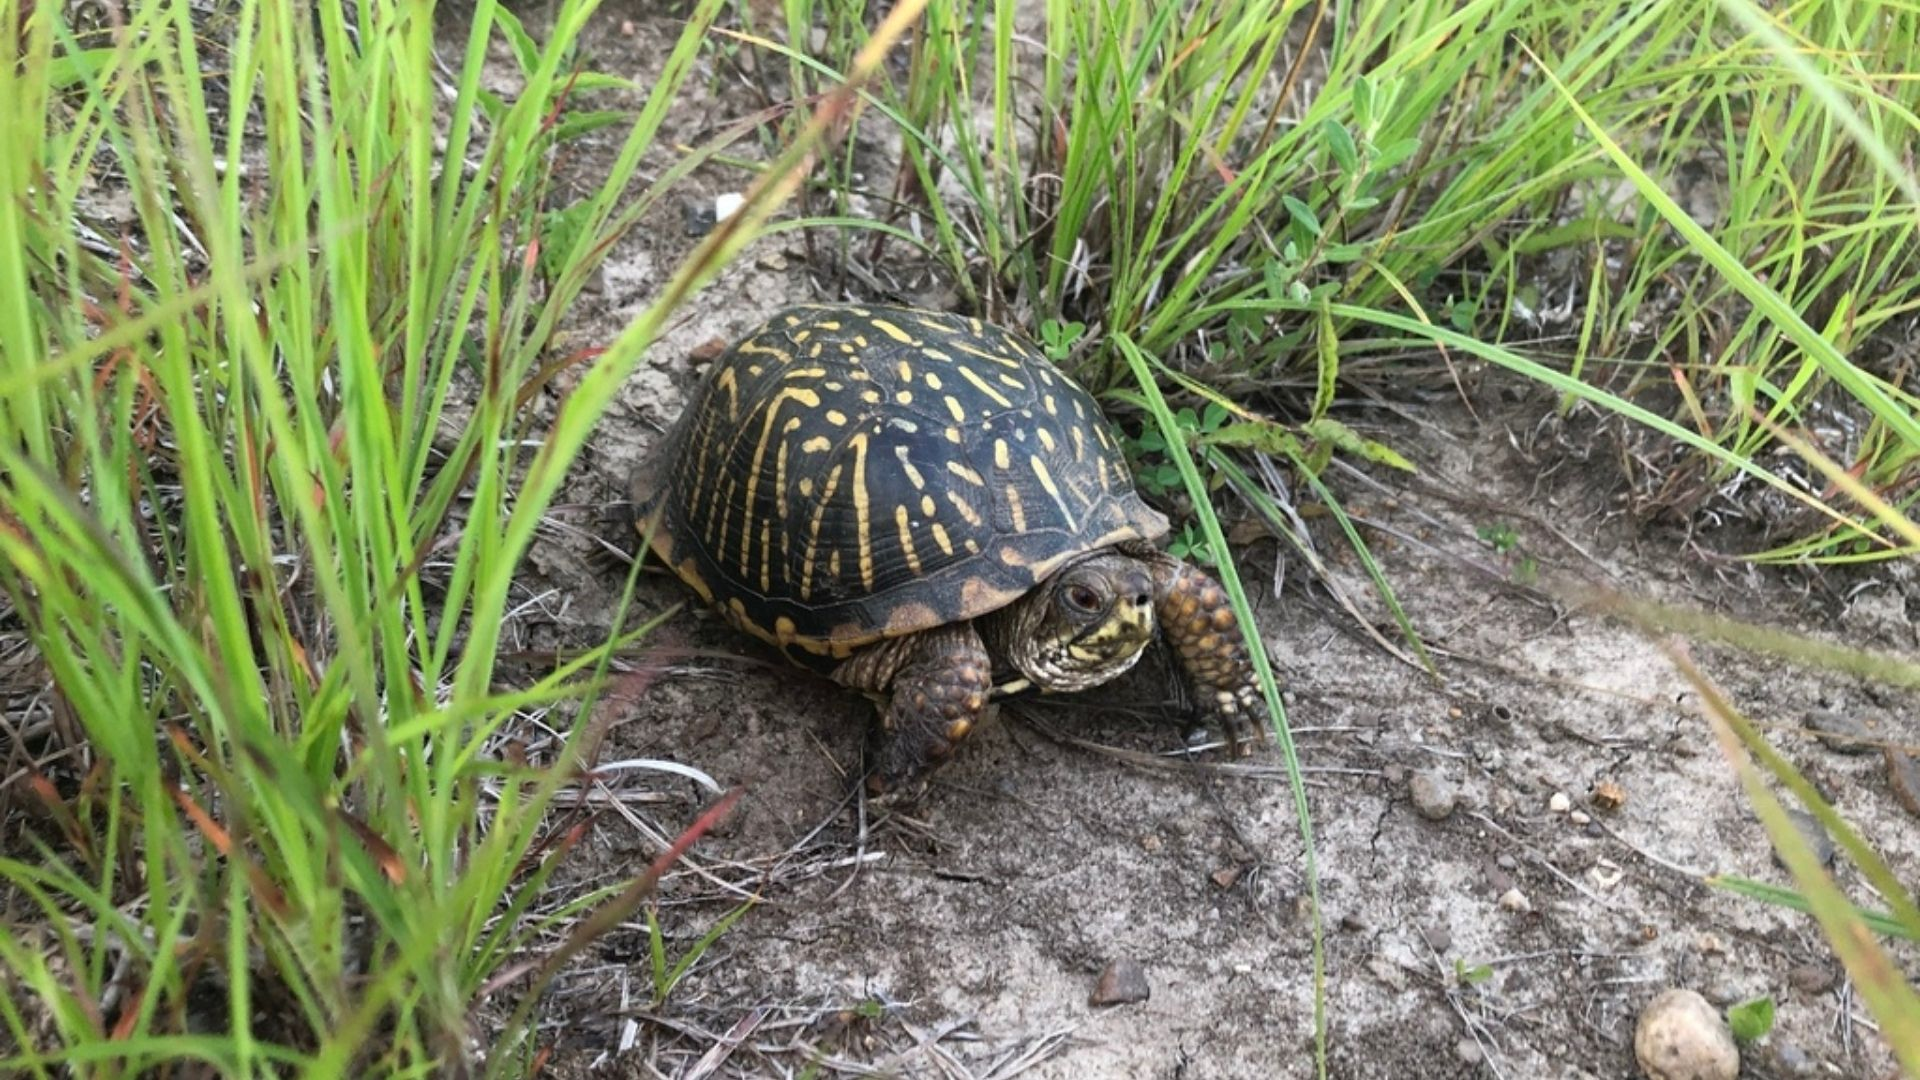 A brown ornate box turtle with yellow markings on the shell, walking out from green grass on bare ground